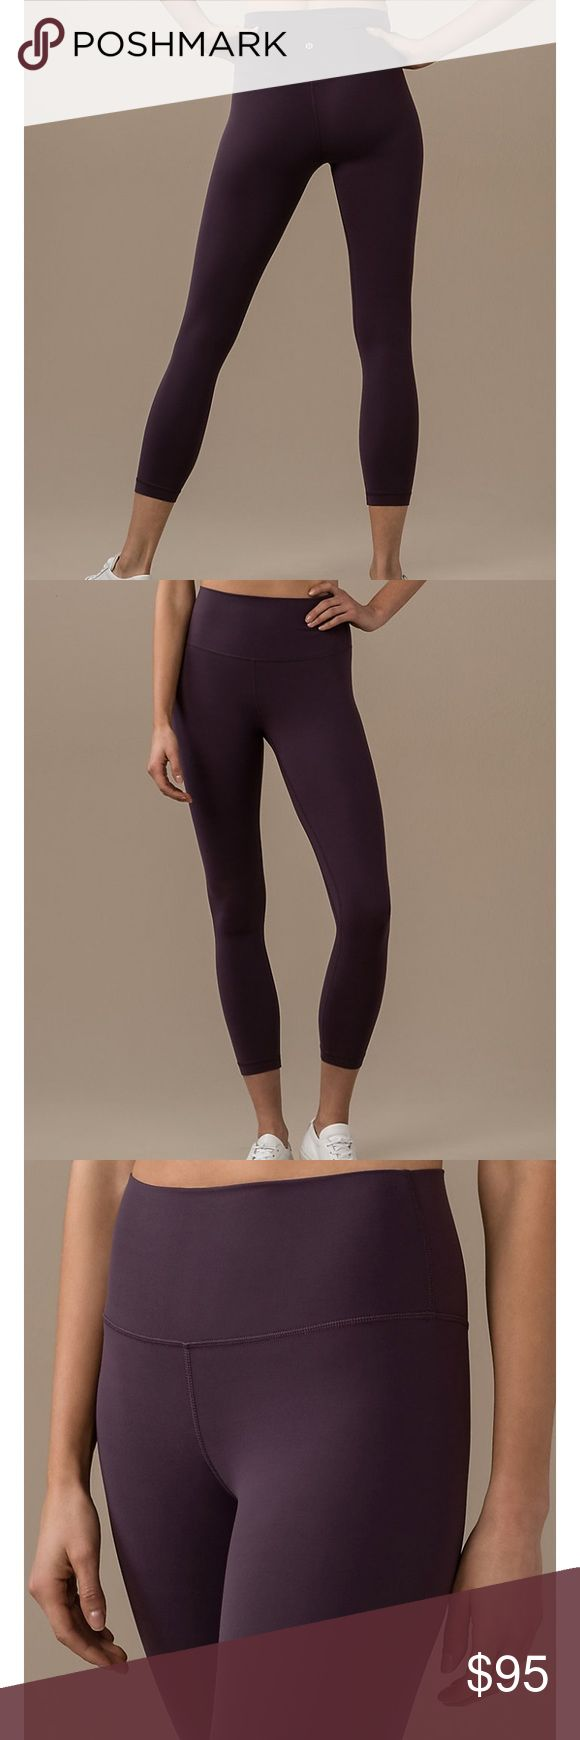 Lululemon Align II Pant in Black Currant SZ 4 No tags, worn only once (and washed per Lululemon fabric standards). They are in perfect condition, I've just decided I'm not crazy about the color on my skin tone. Sold out online. lululemon athletica Pants Leggings